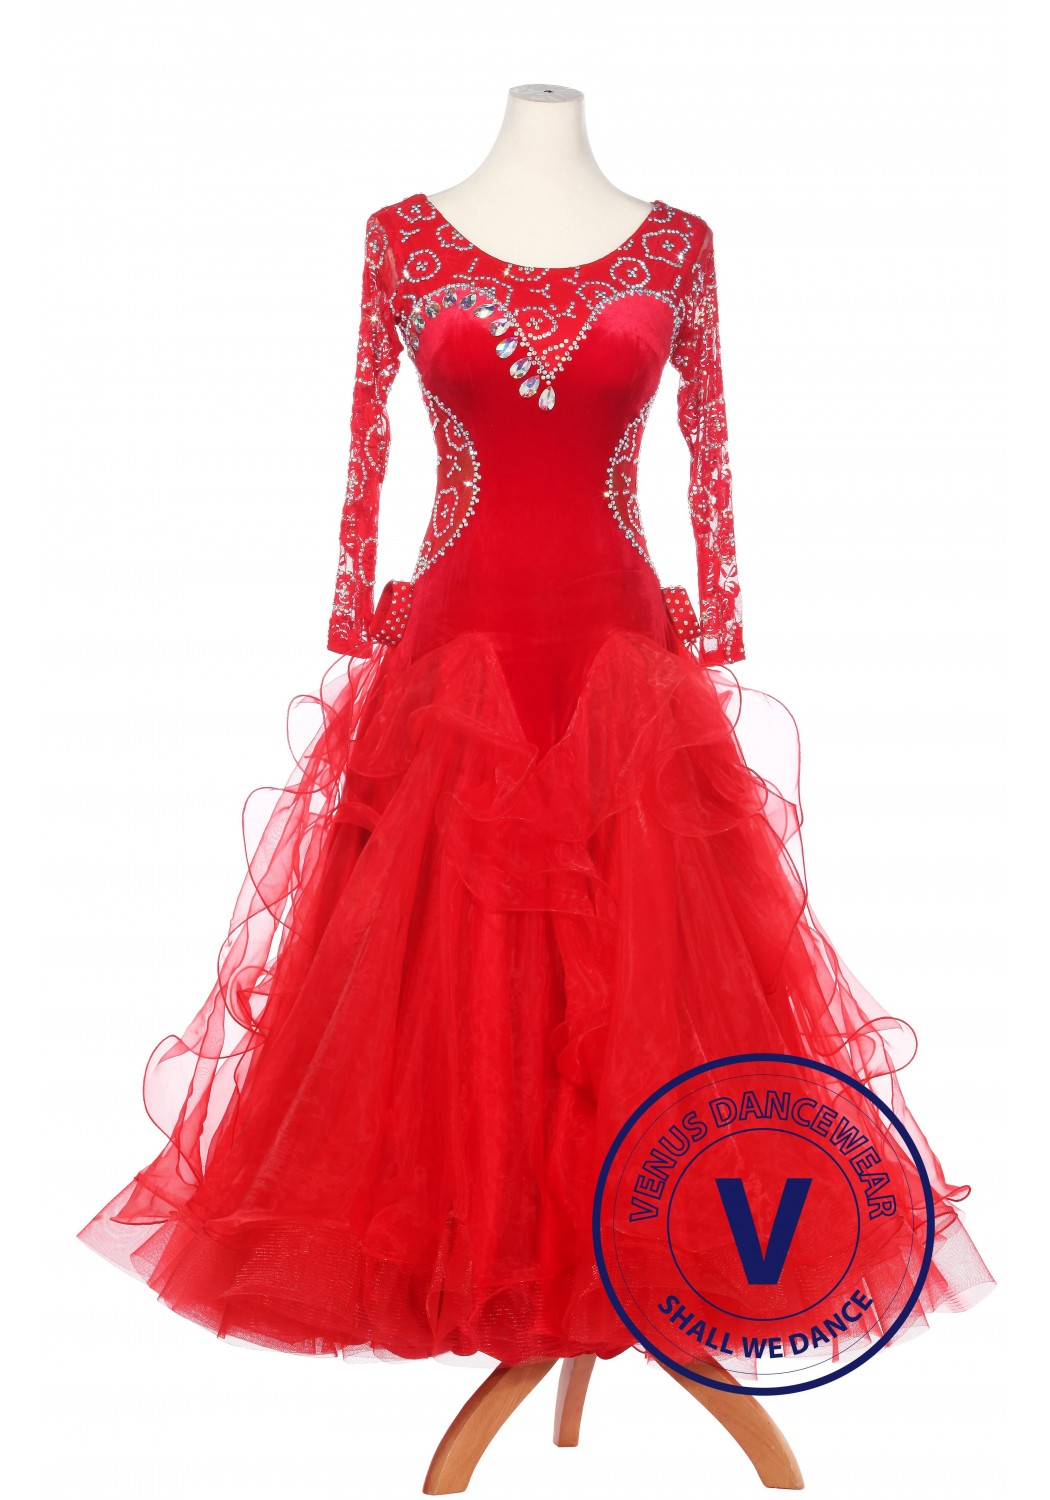 Red Velvet And Lace Standard Waltz Smooth Tango Ballroom